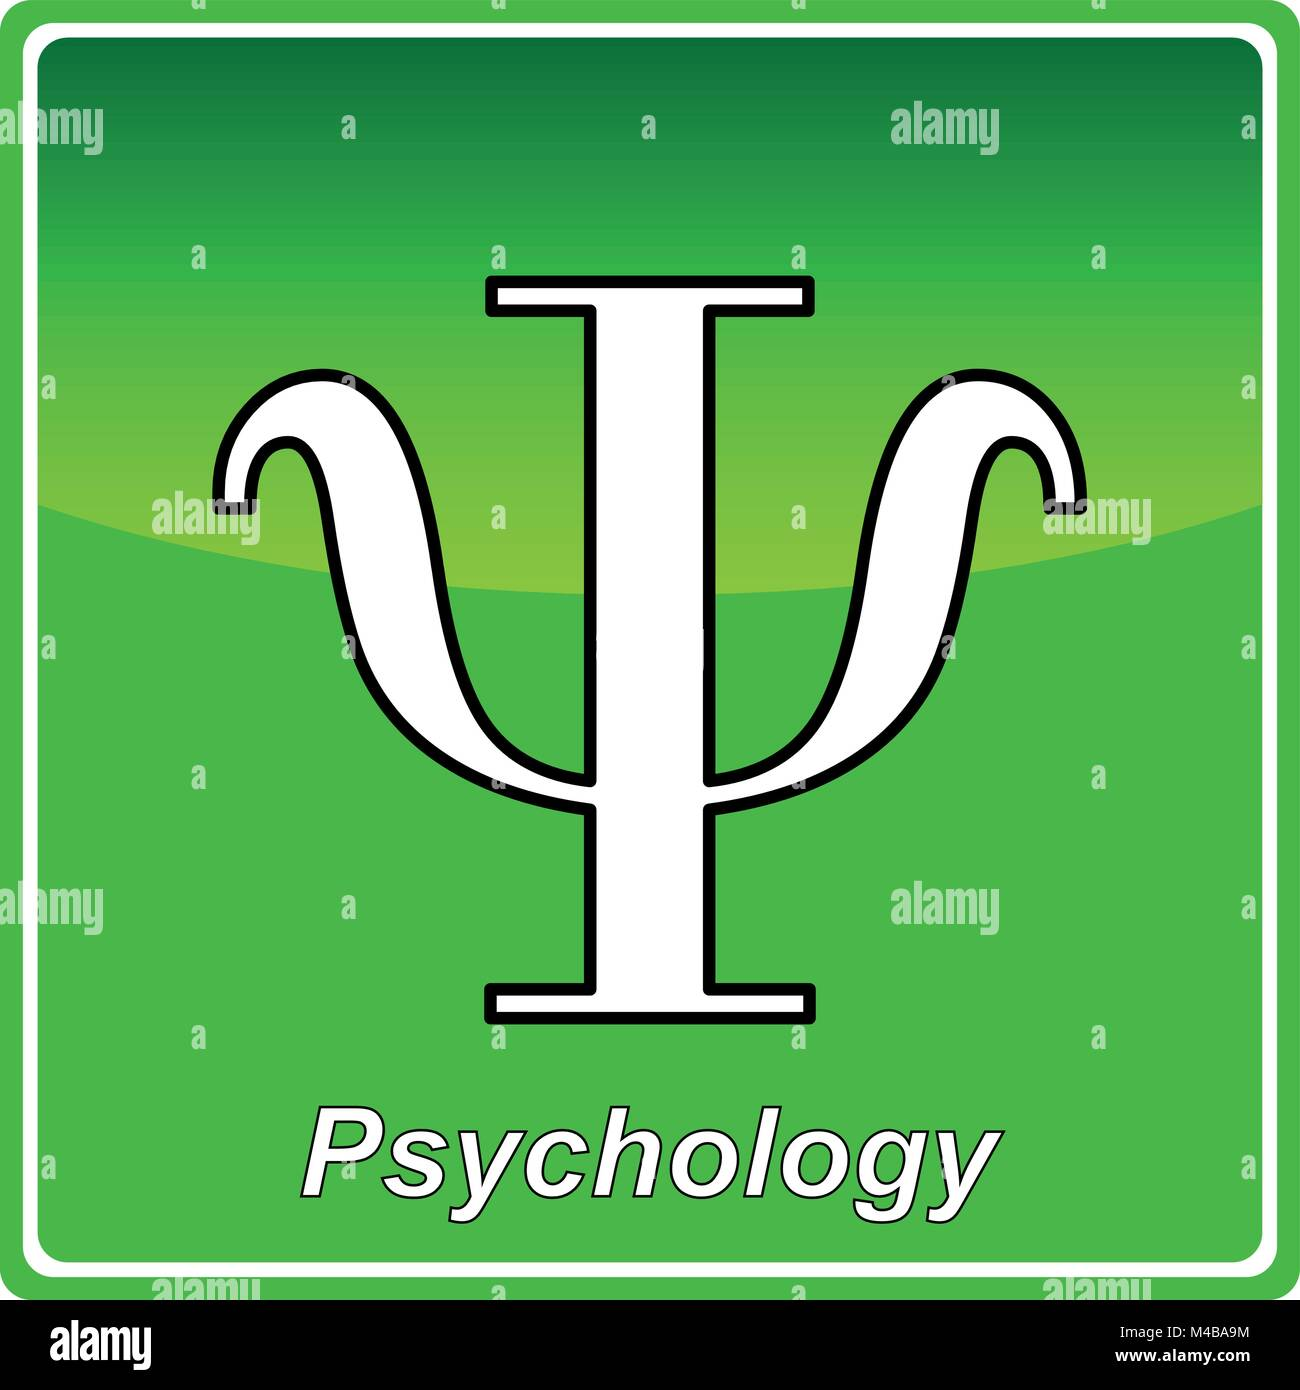 Psychology green icon - vector - Stock Vector